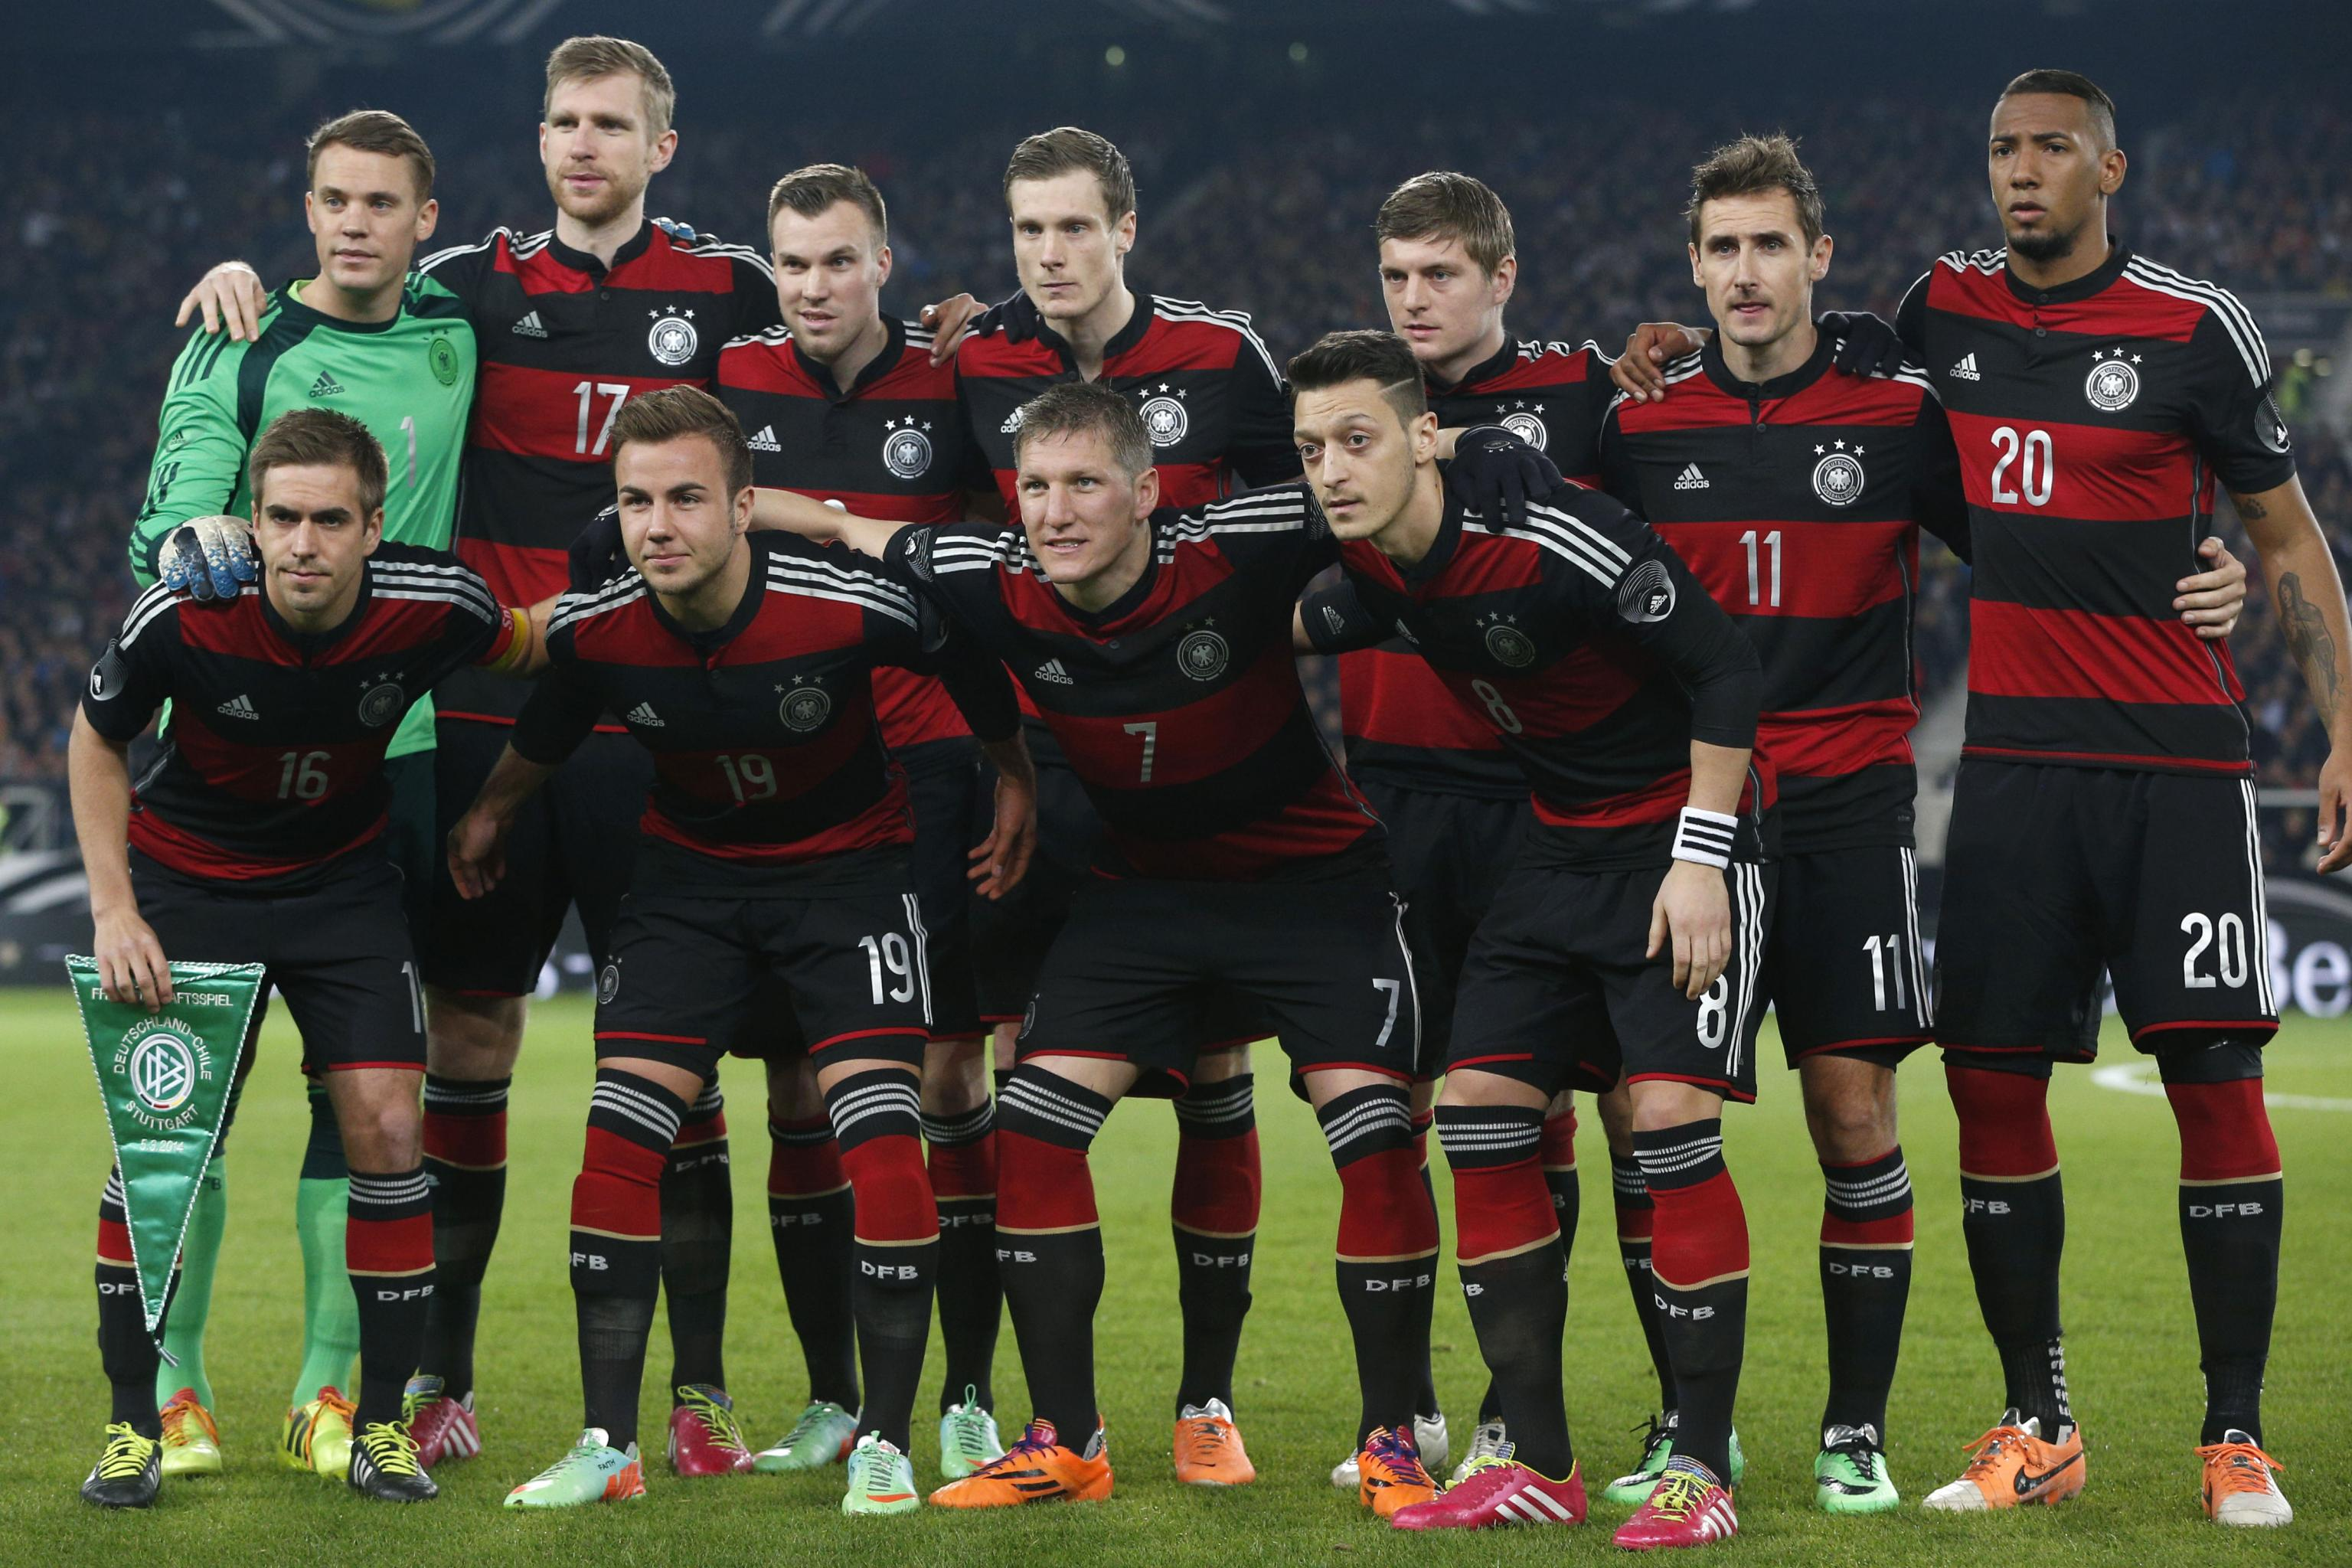 Germany World Cup Roster 2014 Final 23 Man Squad And Starting 11 Projections Bleacher Report Latest News Videos And Highlights